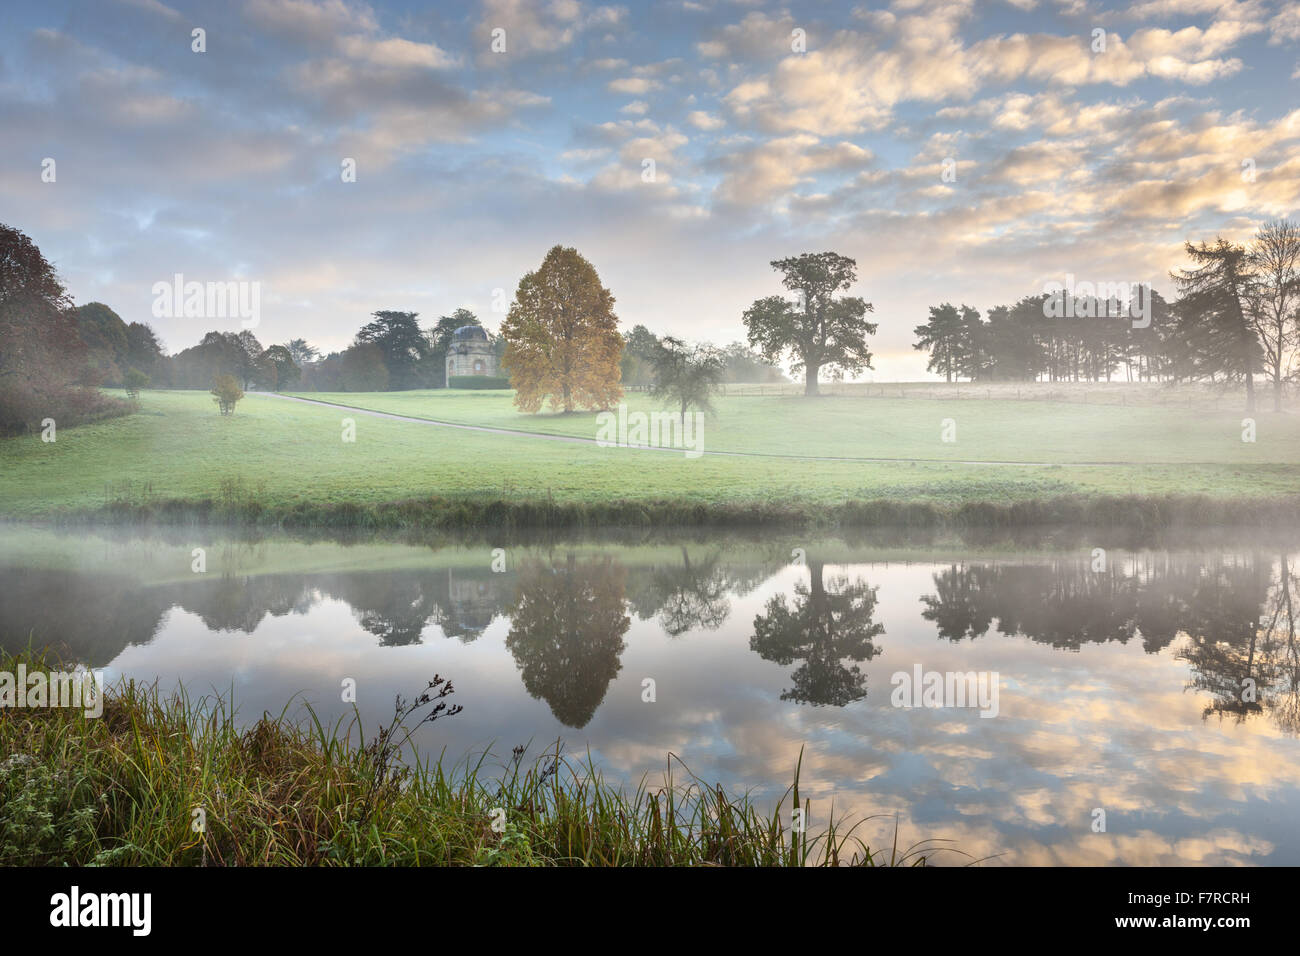 A lake at Stowe, Buckinghamshire. Stowe is an 18th century landscaped garden, and includes more than 40 historic - Stock Image